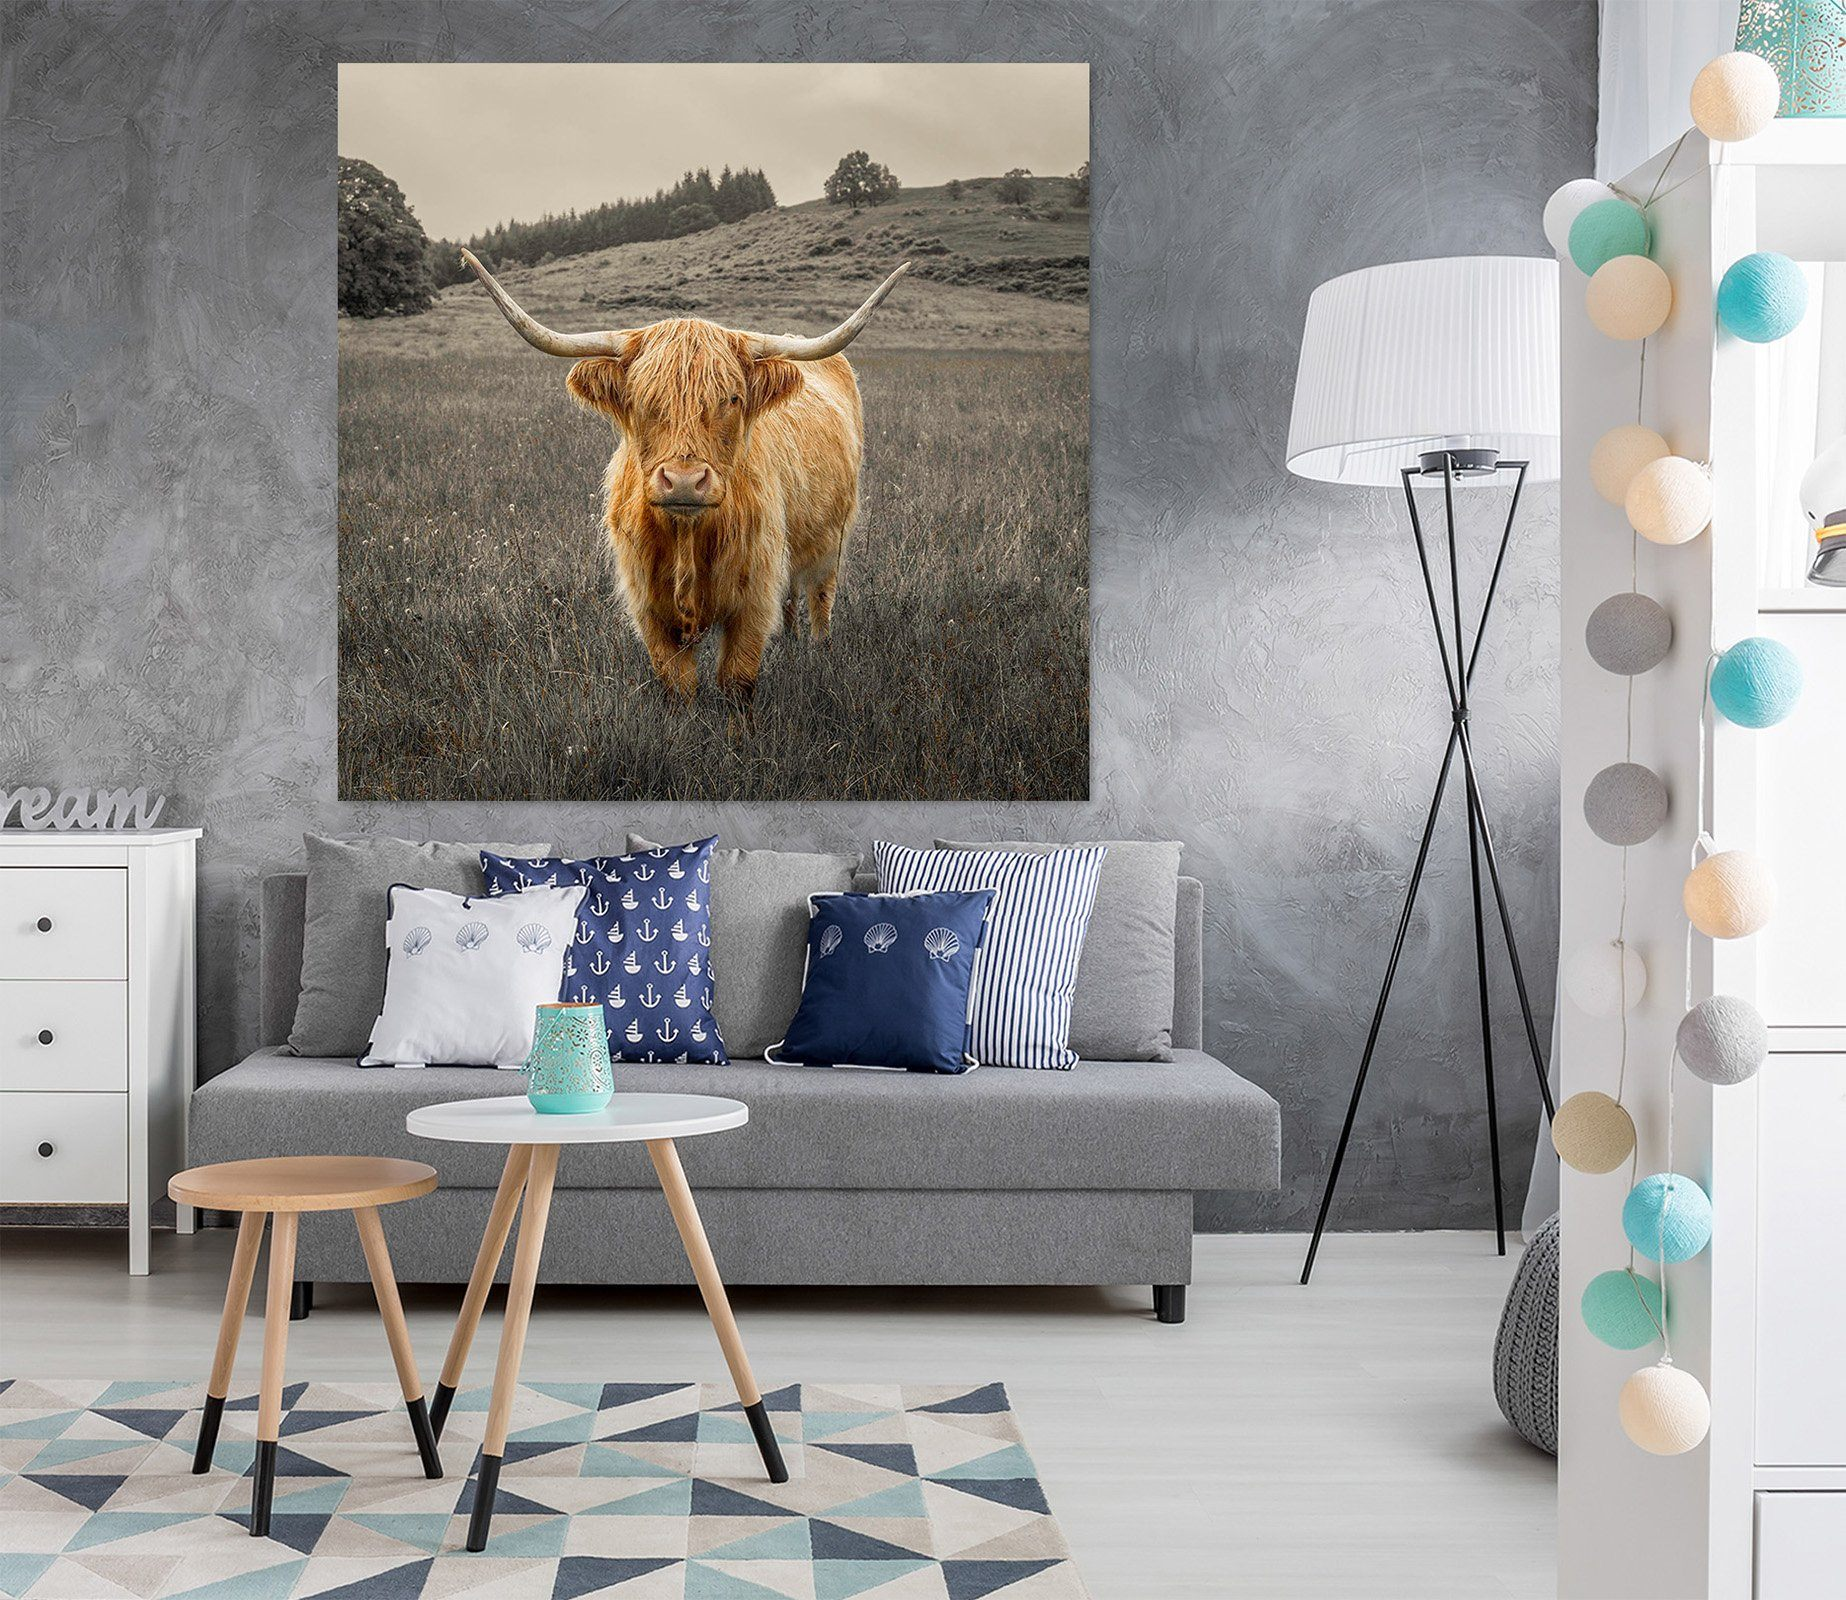 3D Alpine Cattle 032 Assaf Frank Wall Sticker Wallpaper AJ Wallpaper 2